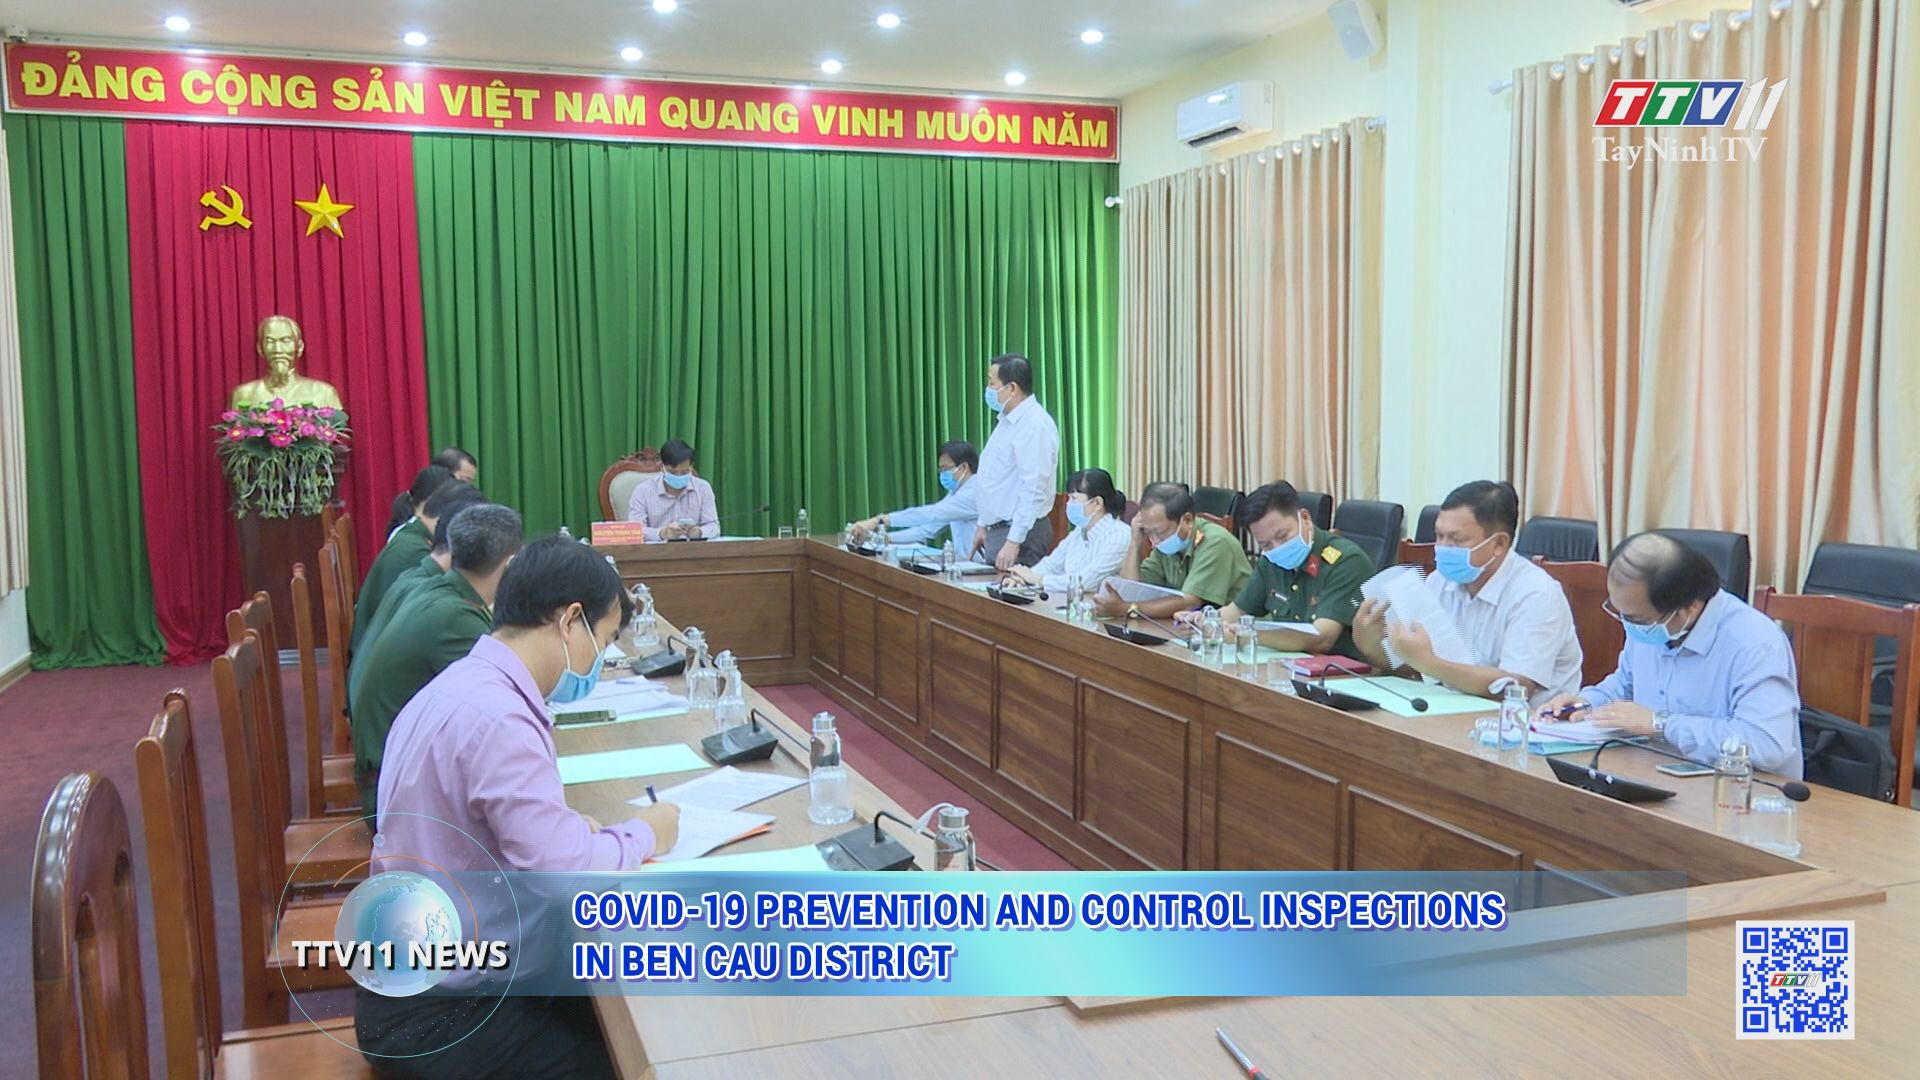 Covid-19 prevention and control inspections in Ben Cau district | TTVNEWS | TayNinhTV Today